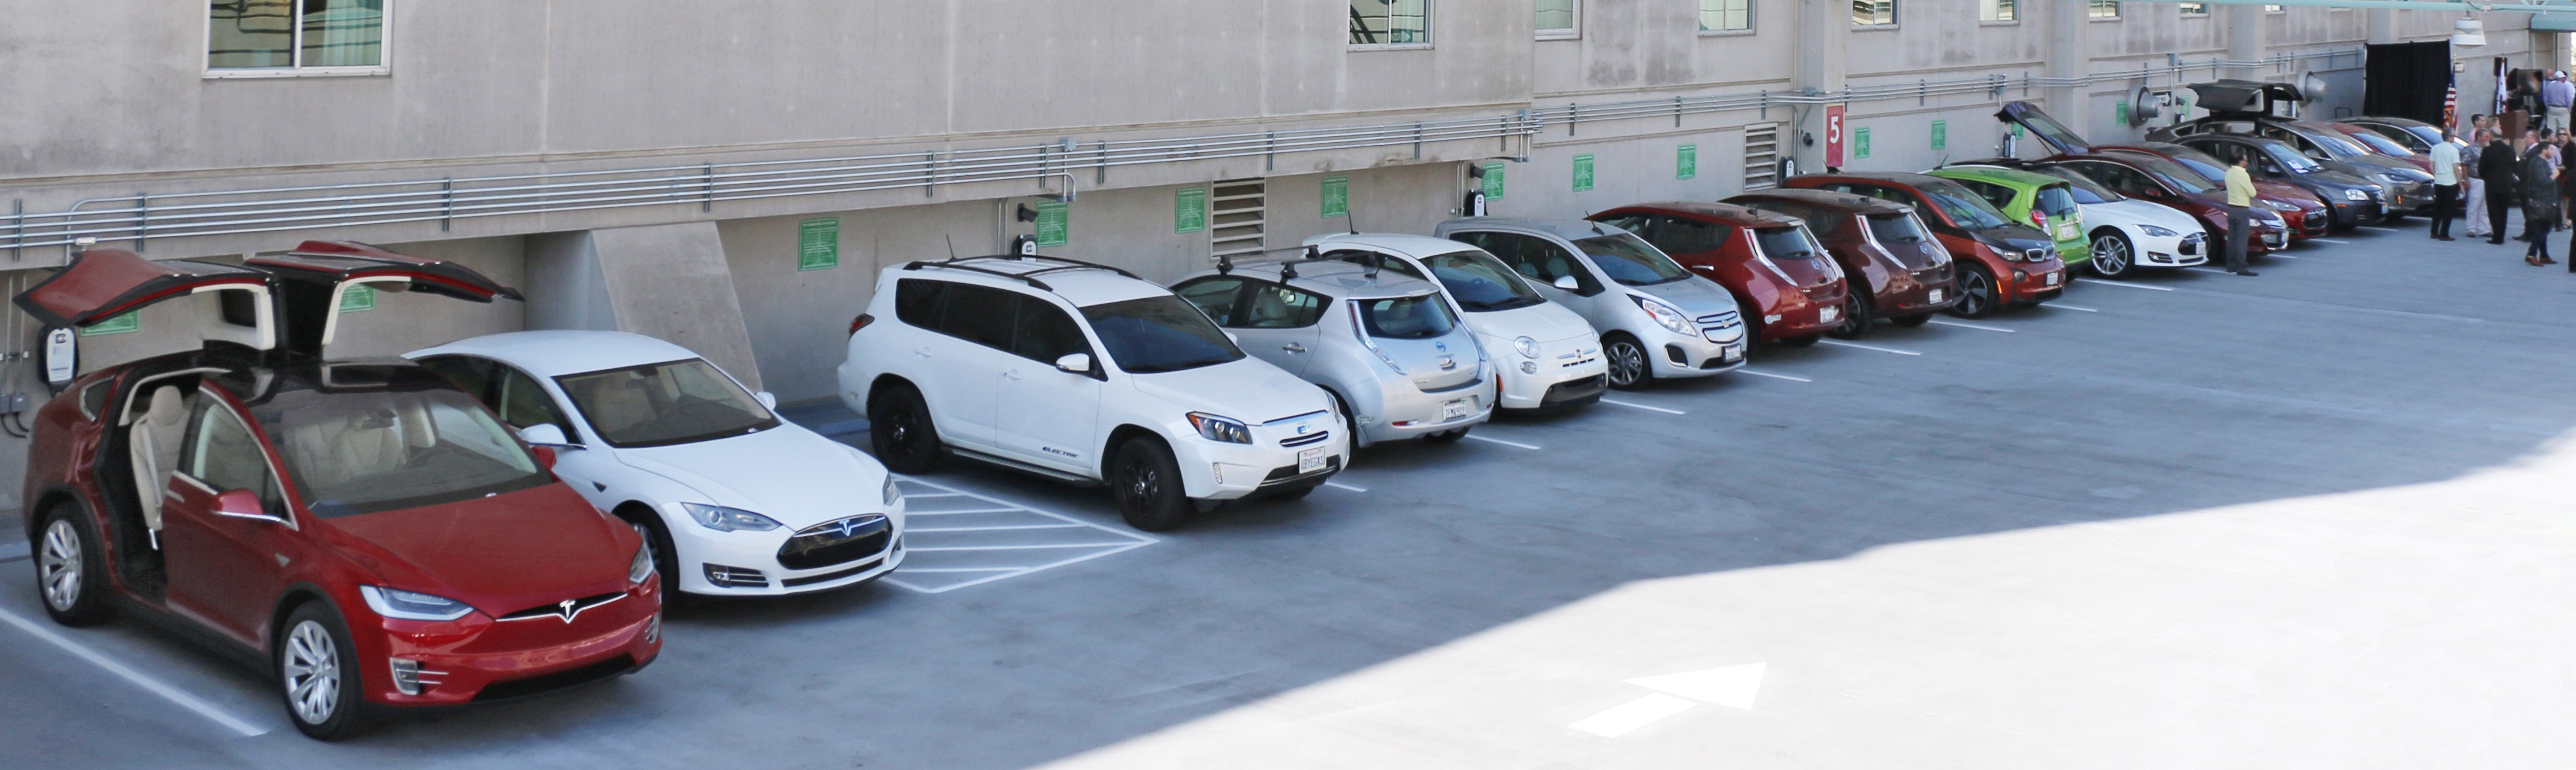 EVs Charging at Hyatt Regency Sacramento